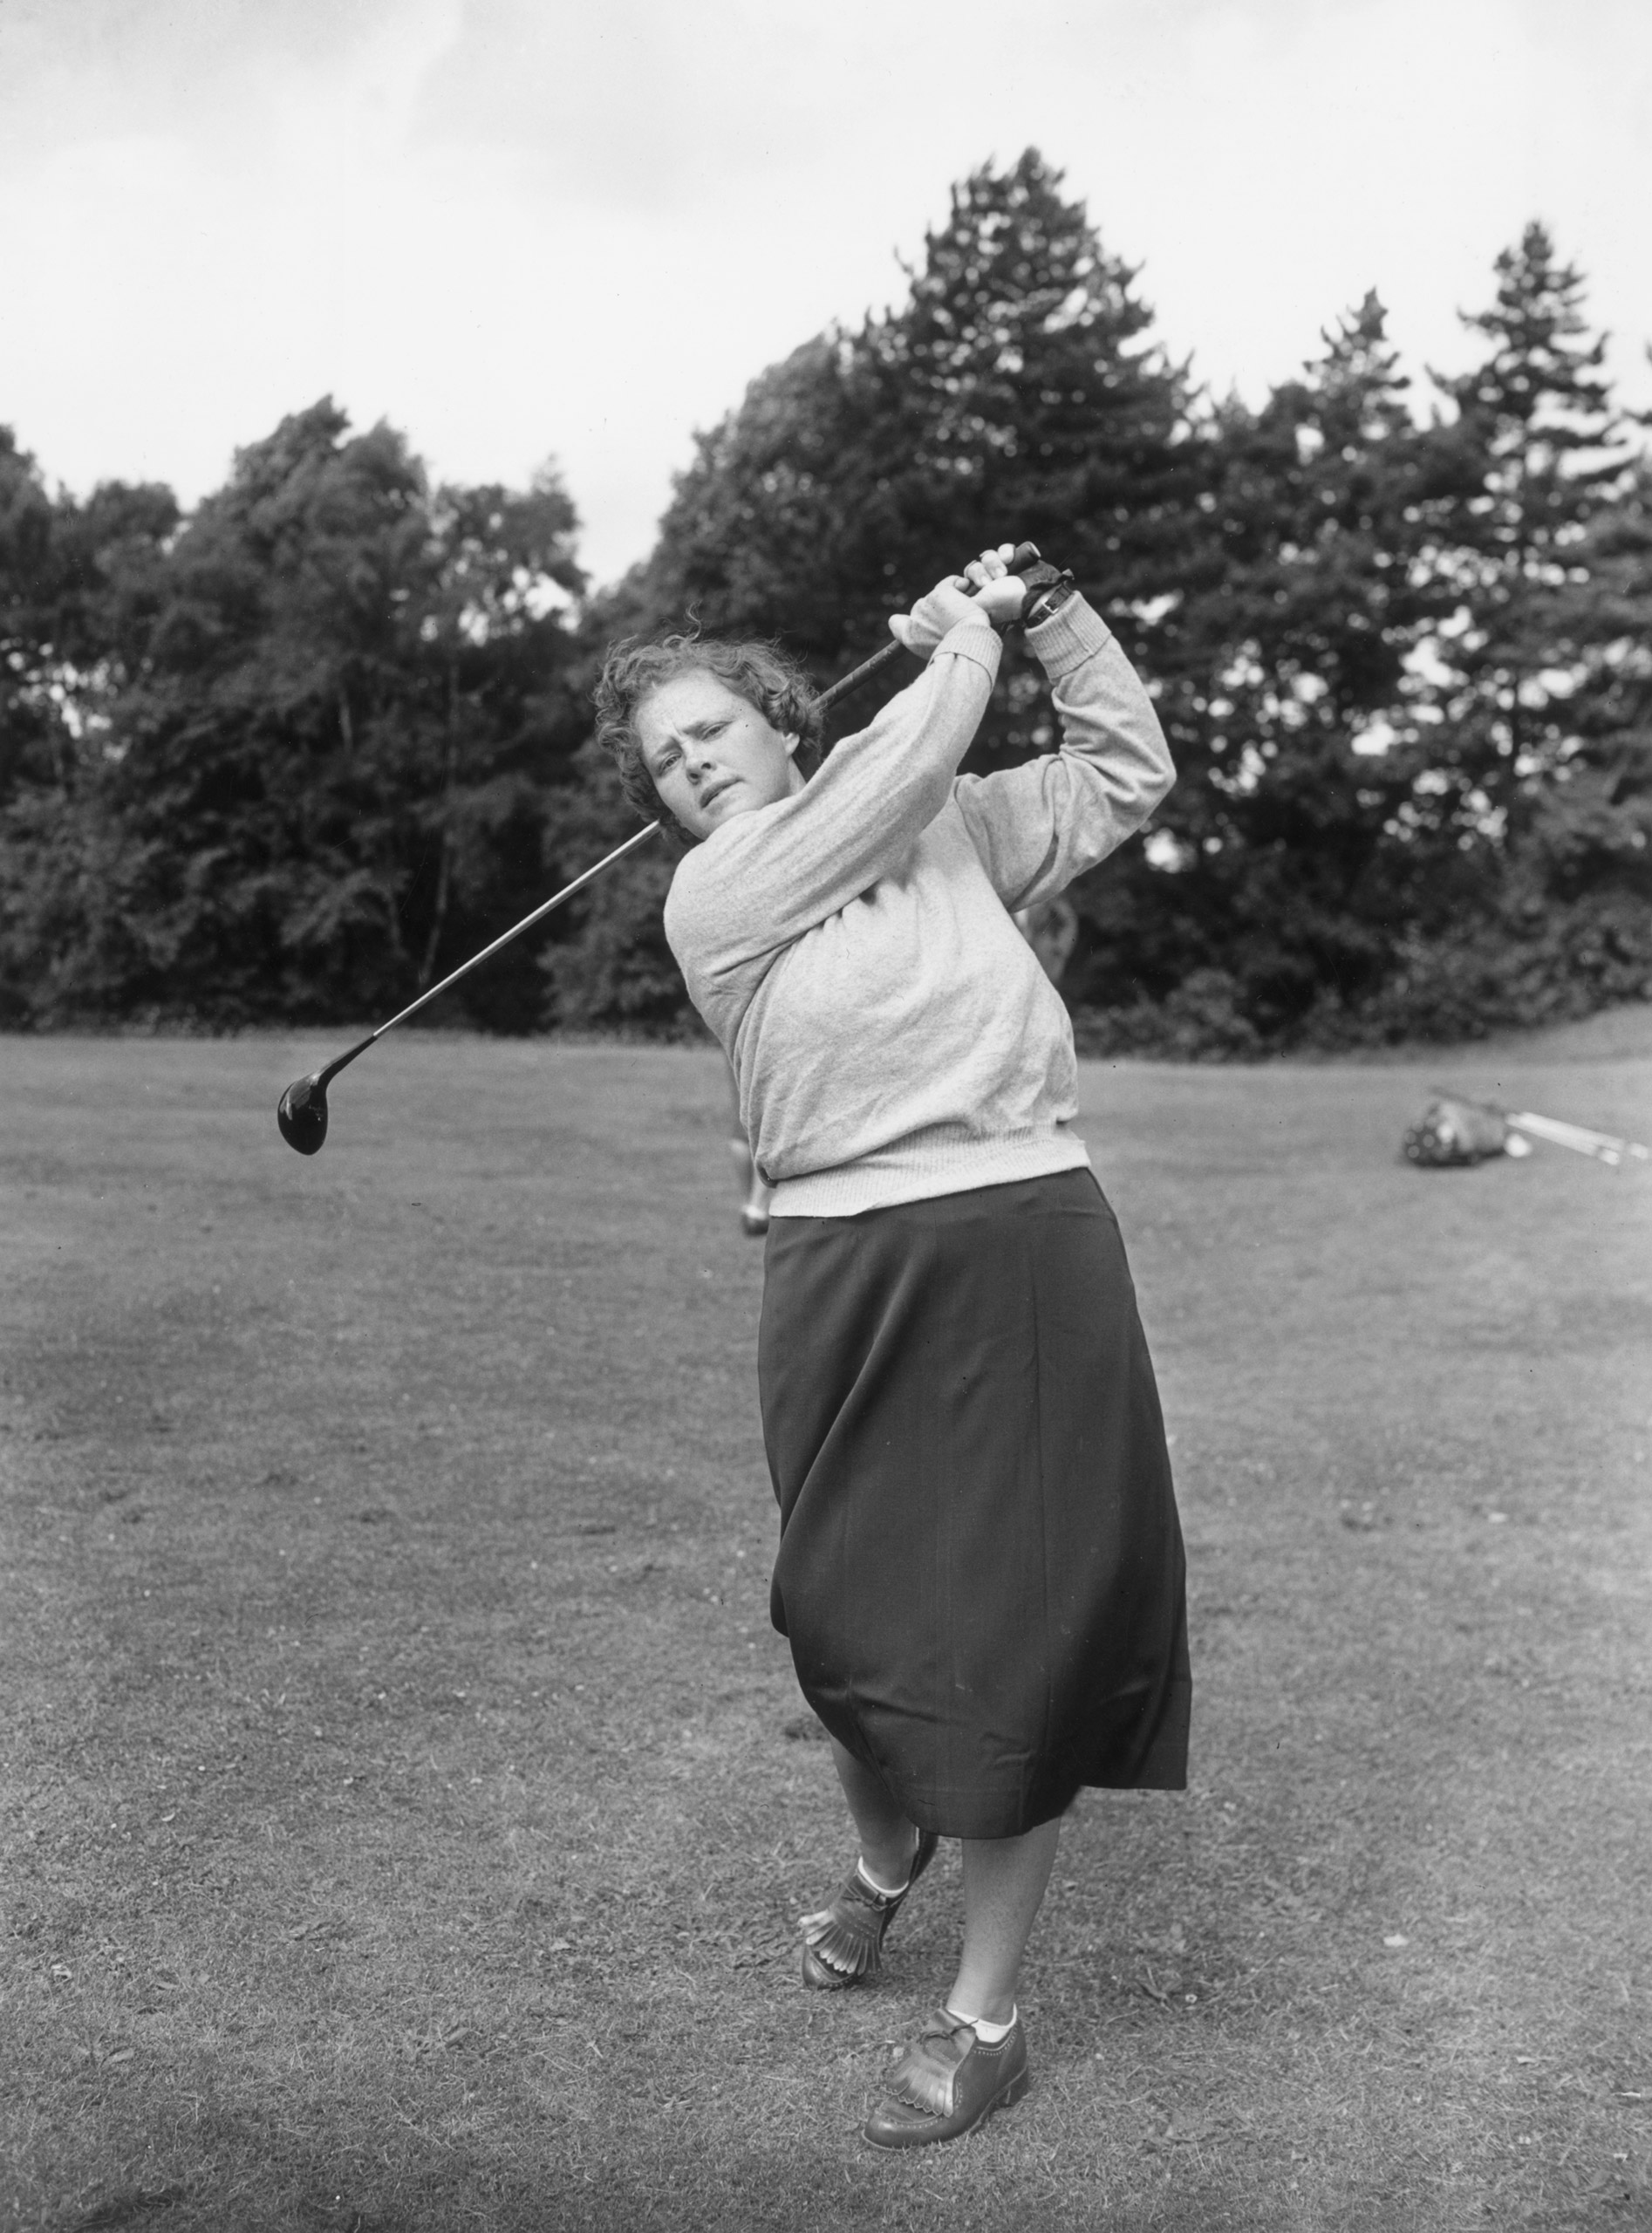 "One of America's top ranking professional golfers Patty Berg practicing at Sunningdale, 1951. She was one of the founders of the LPGA (along with Zaharias) and TIME once <a href=""http://time.com/vault/issue/1935-09-09/page/34/"">noted</a> that her father encouraged her to start golfing so she would stop playing football on a  neighborhood boys team."